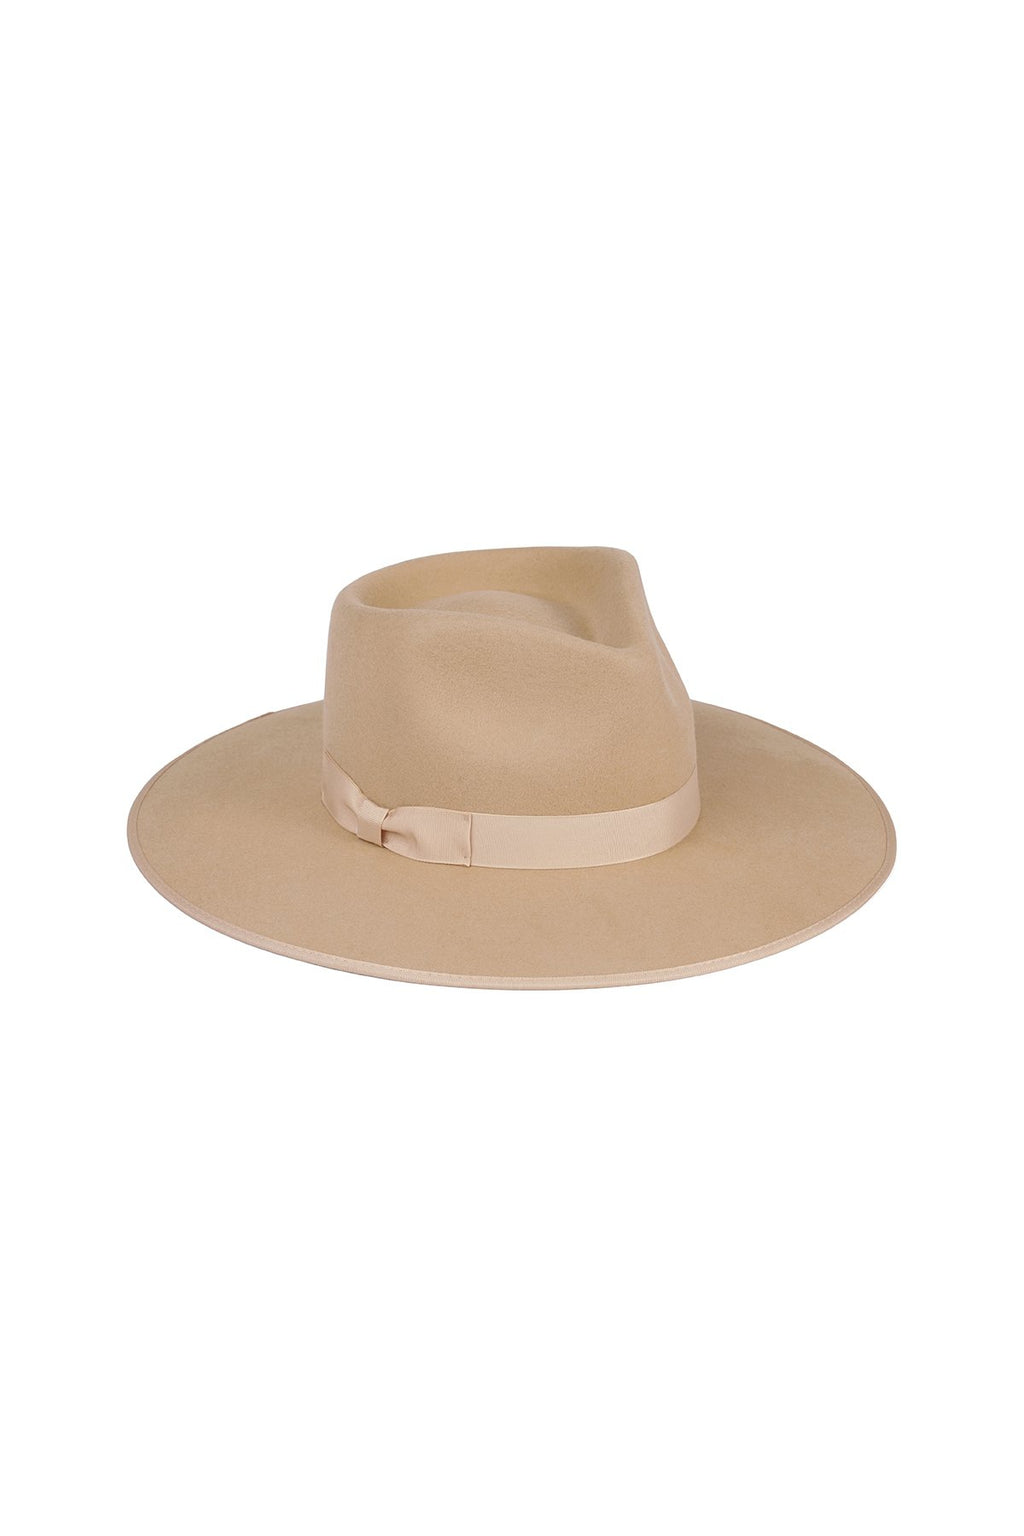 LACK OF COLOR RANCHER HAT IN CAMEL